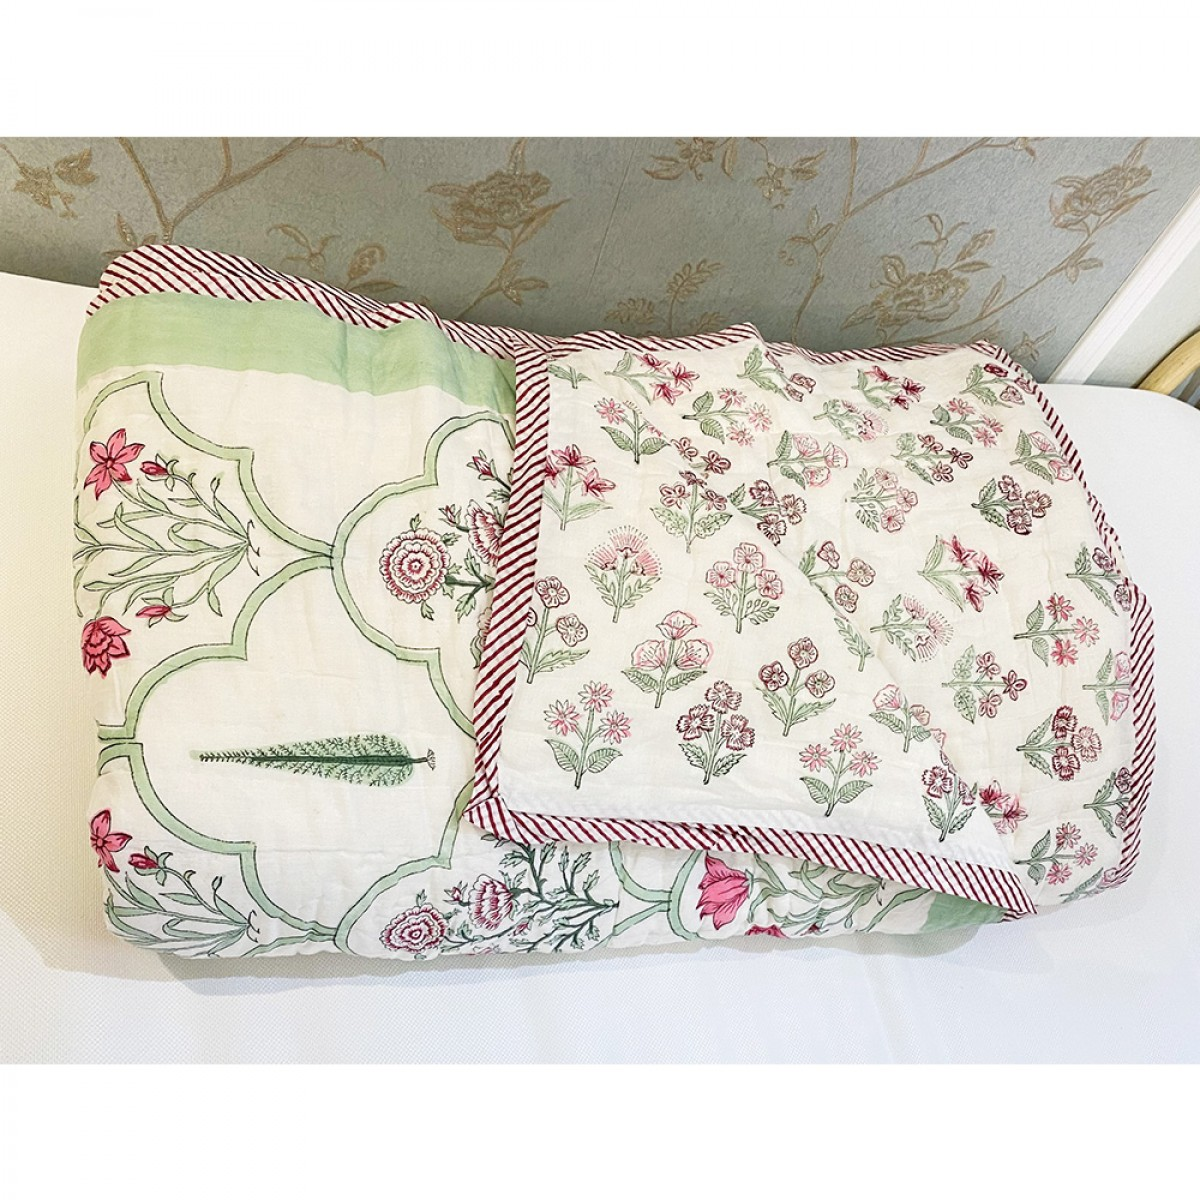 100% Cotton Block Printed Queen Size Quilts - Spring Blossom